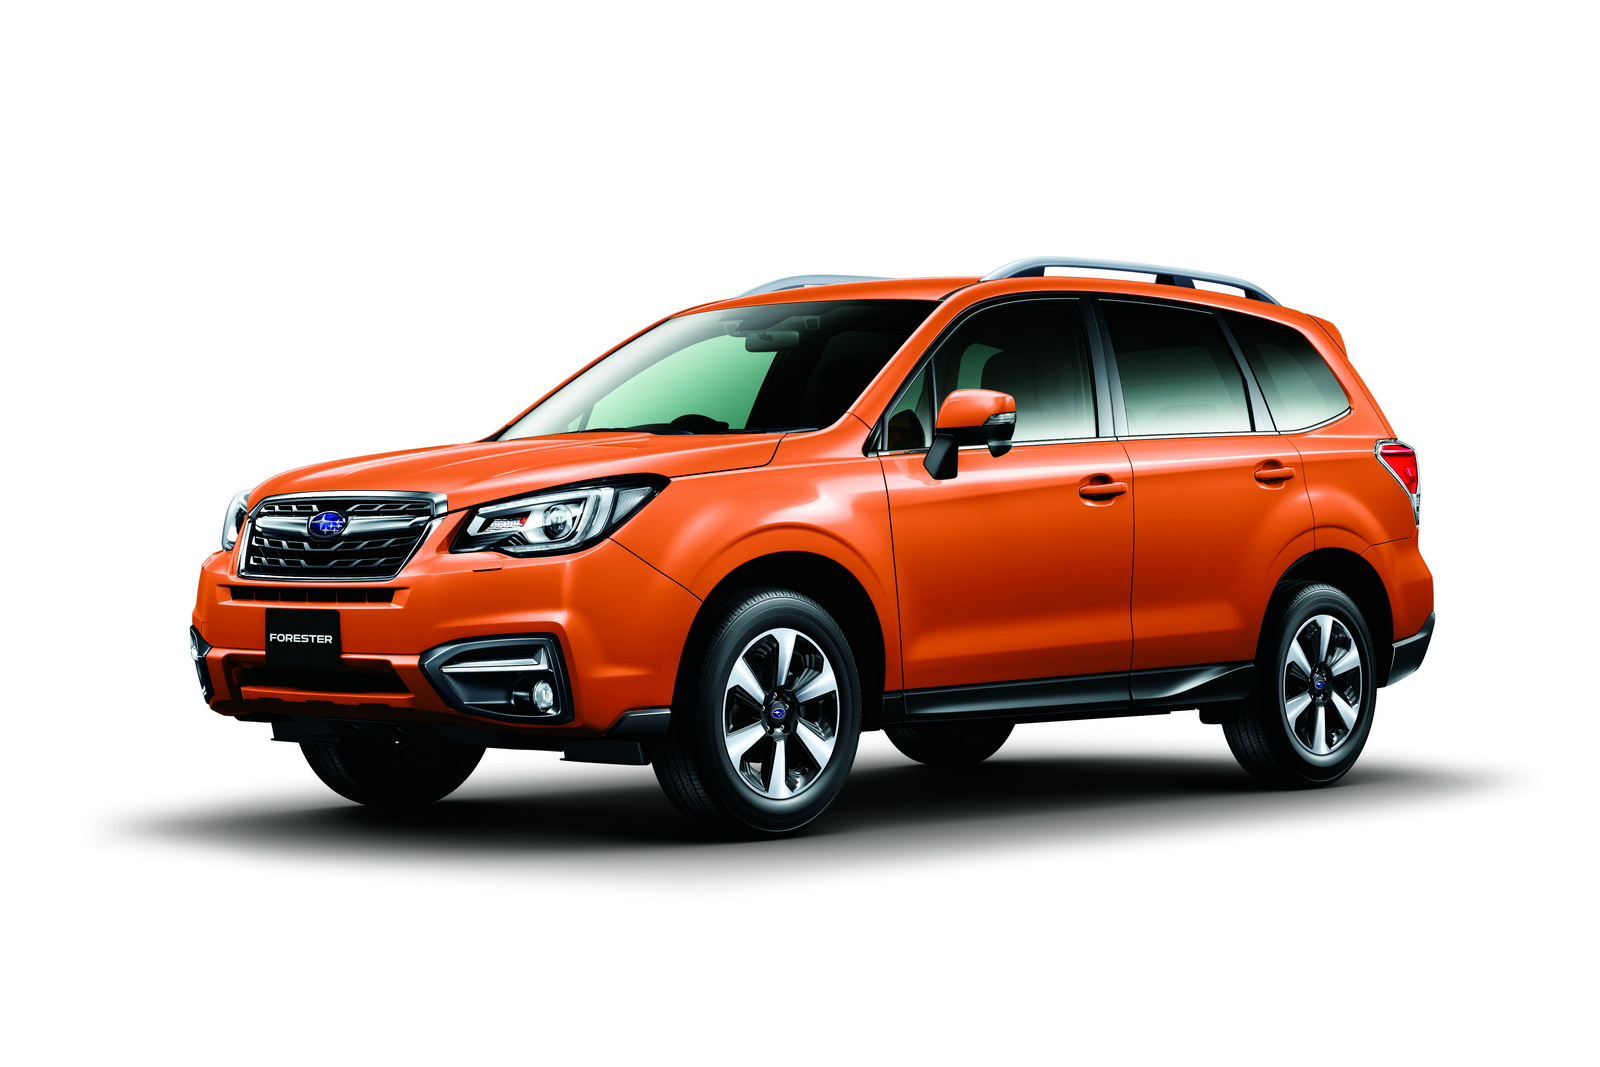 2017 subaru forester facelift revealed ahead of tokyo for Subaru forester paint job cost